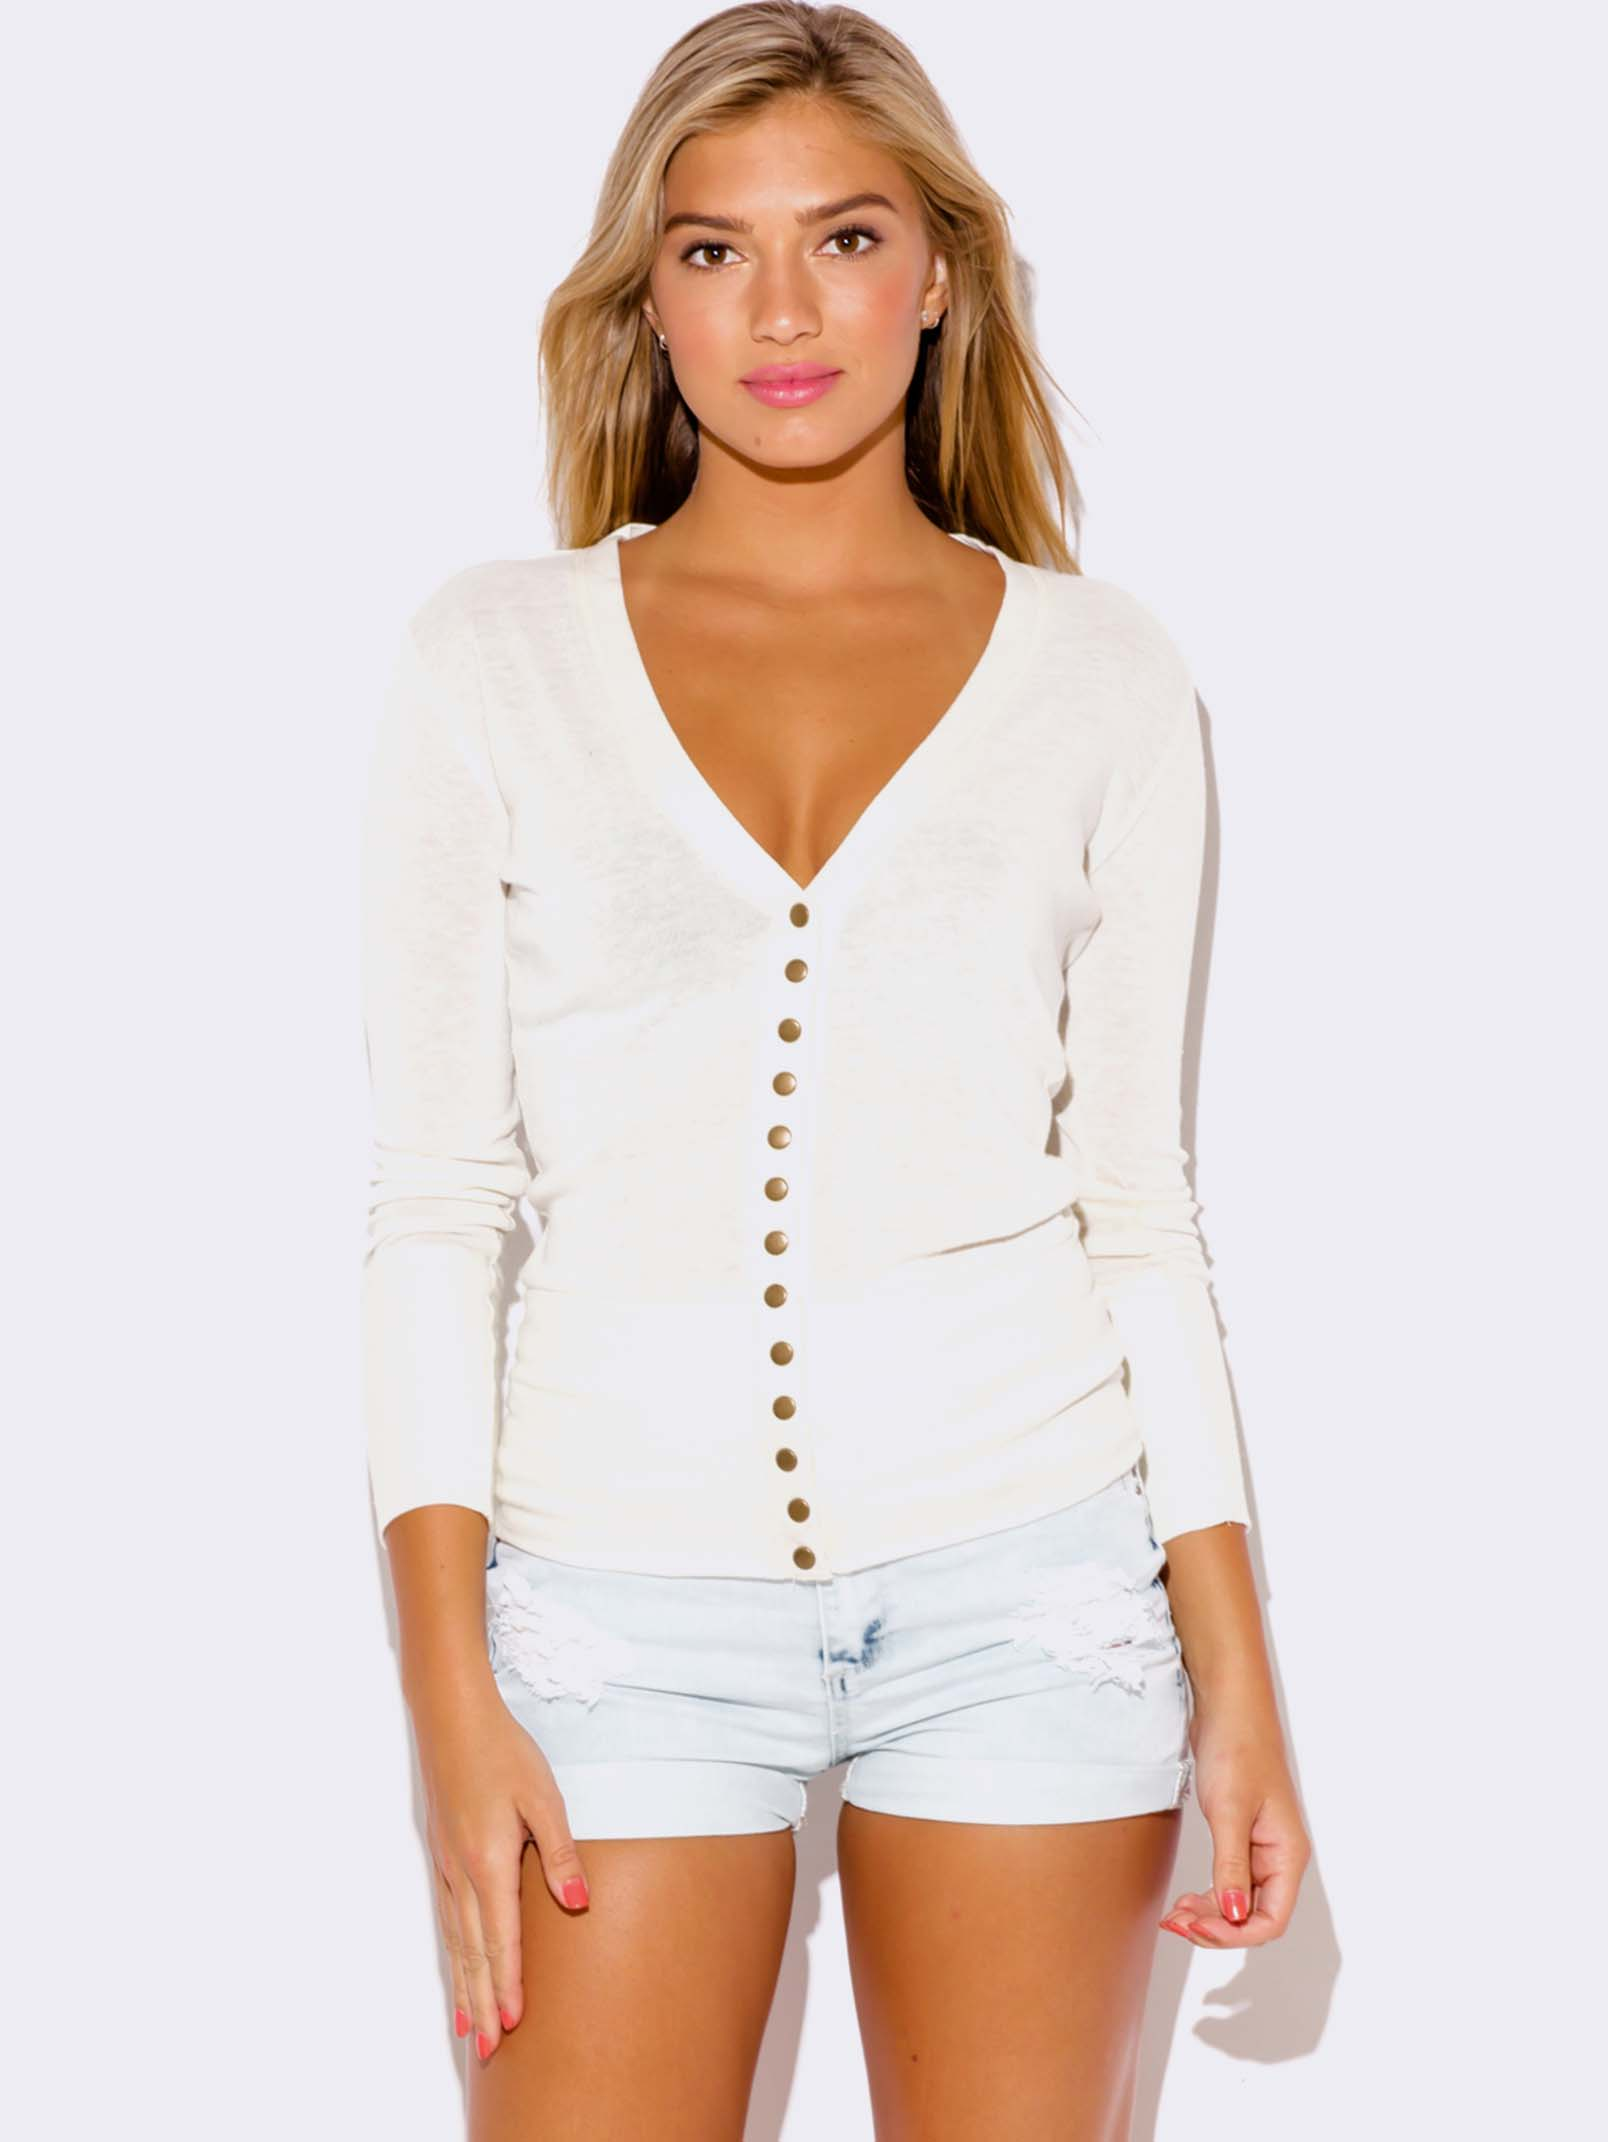 WHITE CARDIGAN SWEATER - ModishOnline.com